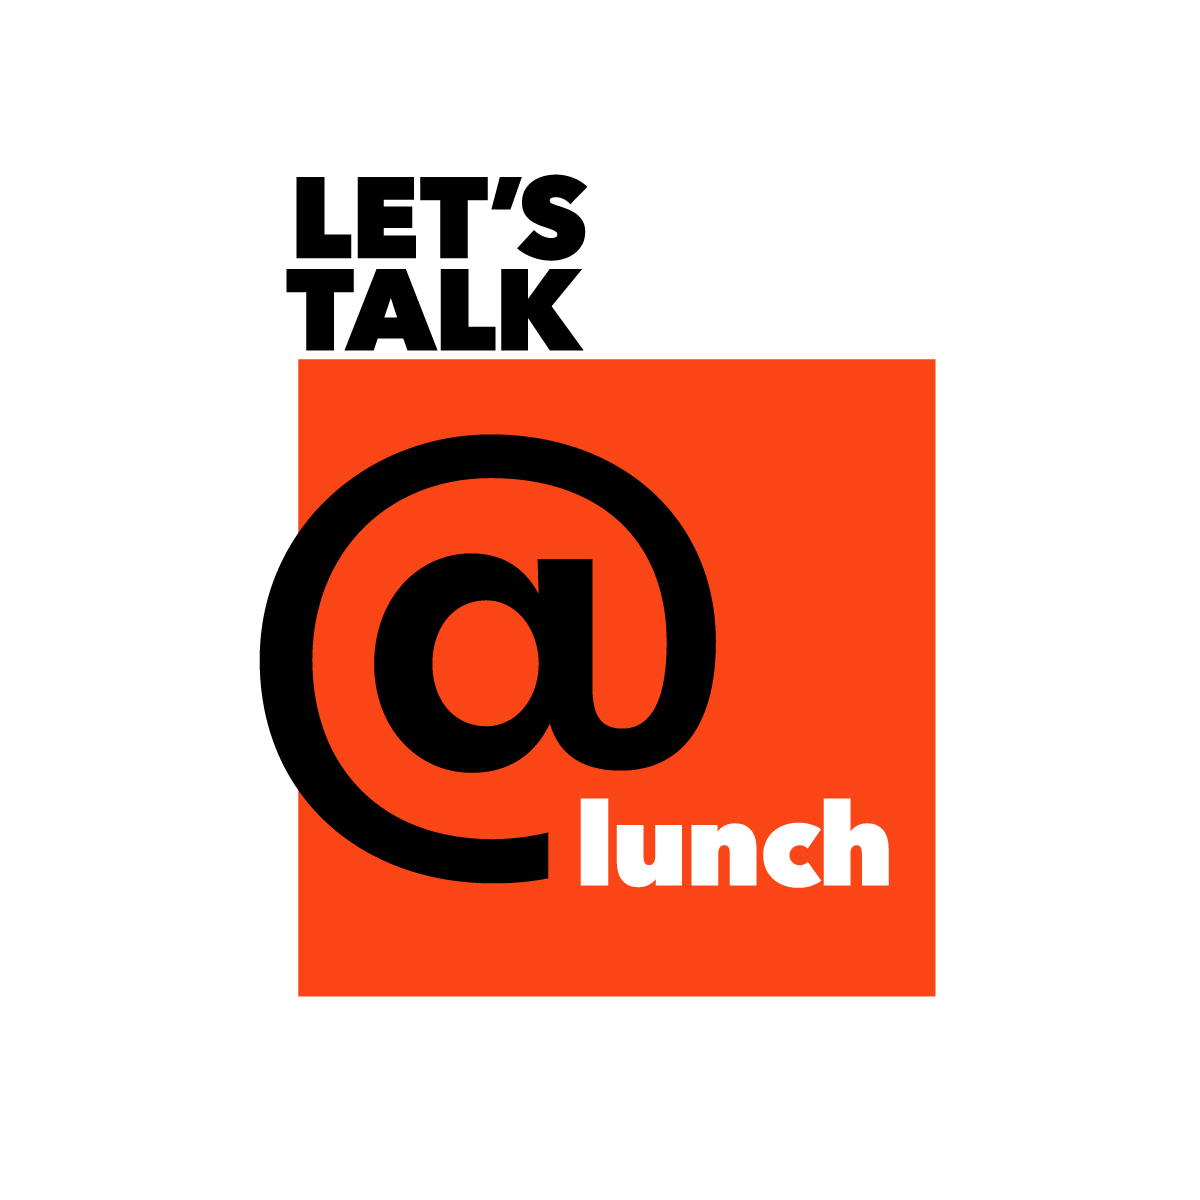 Let's Talk at Lunch logo